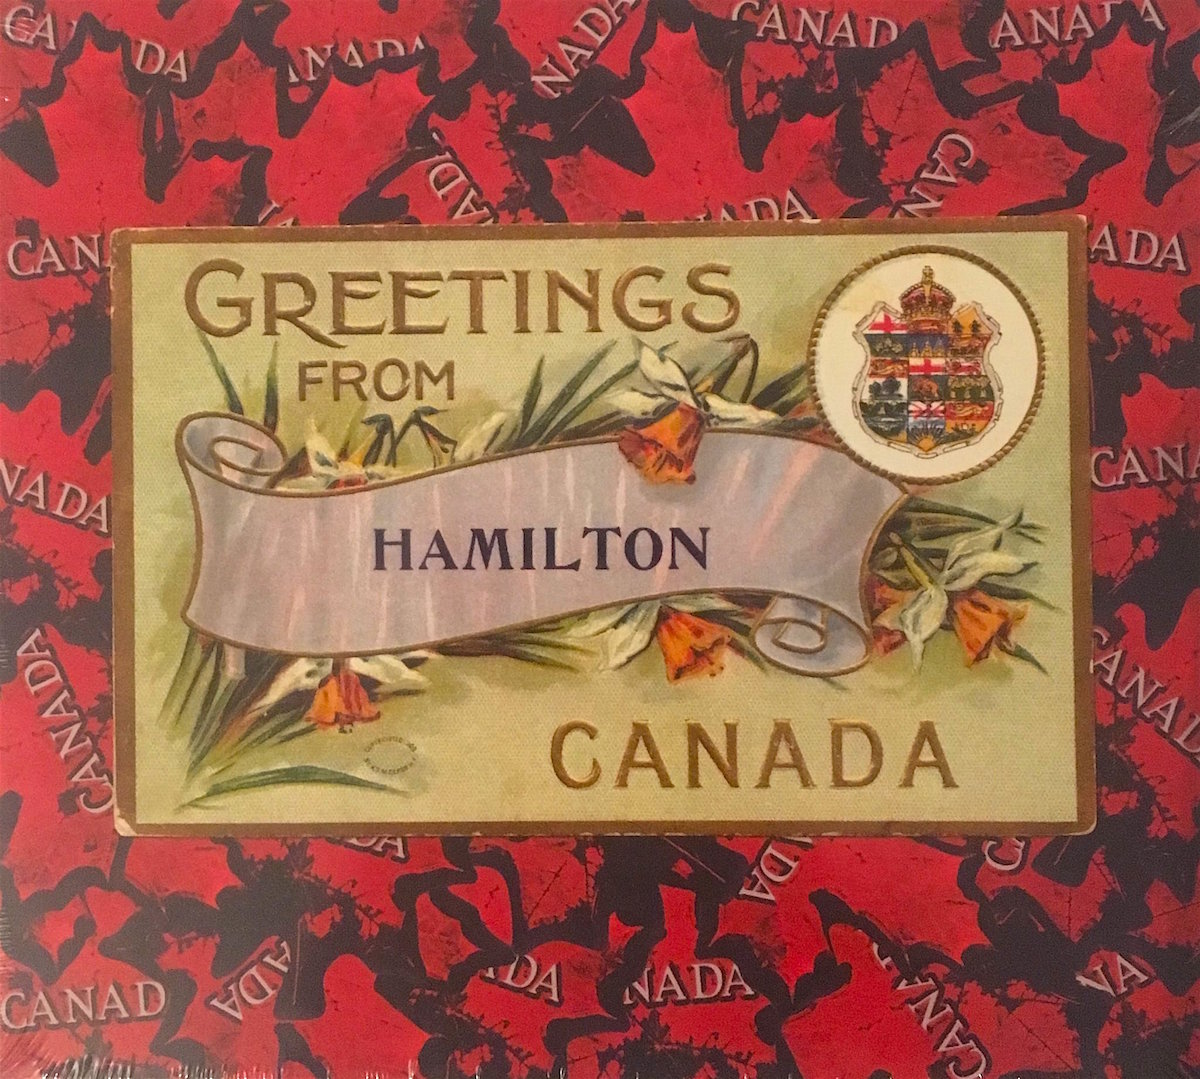 The perlich post scotlands king creosote releases greetings from anderson aka king creosote recorded in 2010 with paul savage at chemikal underground greetings from hamilton canada is king creosotes oldest new m4hsunfo